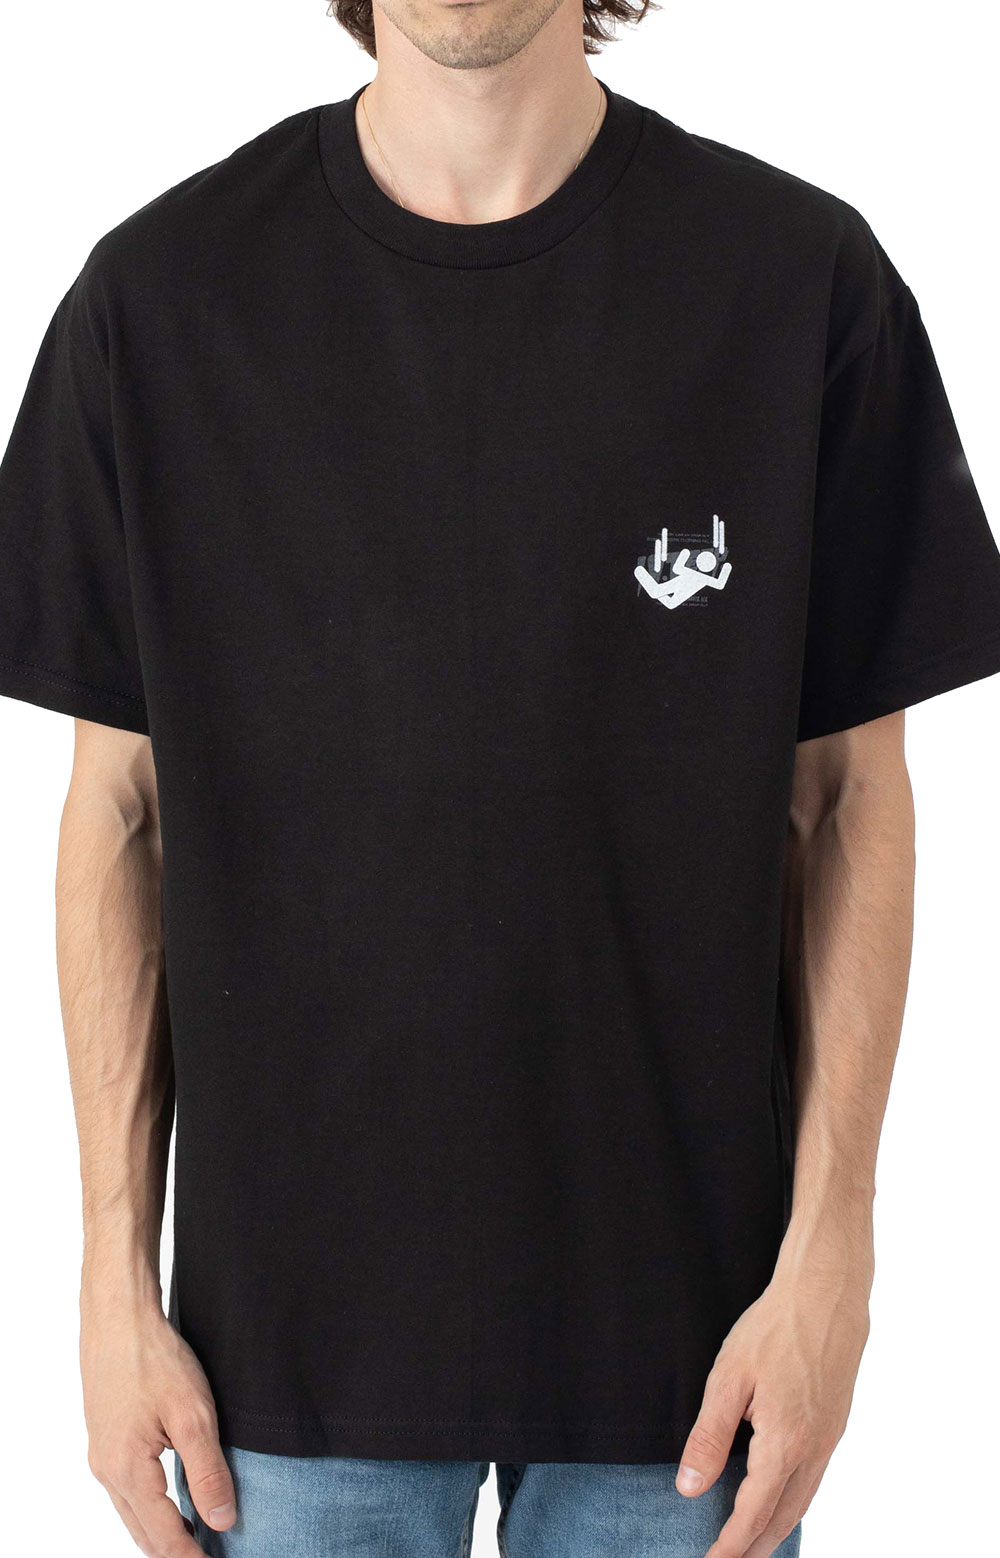 Log In Drop Out T-Shirt - Black 2